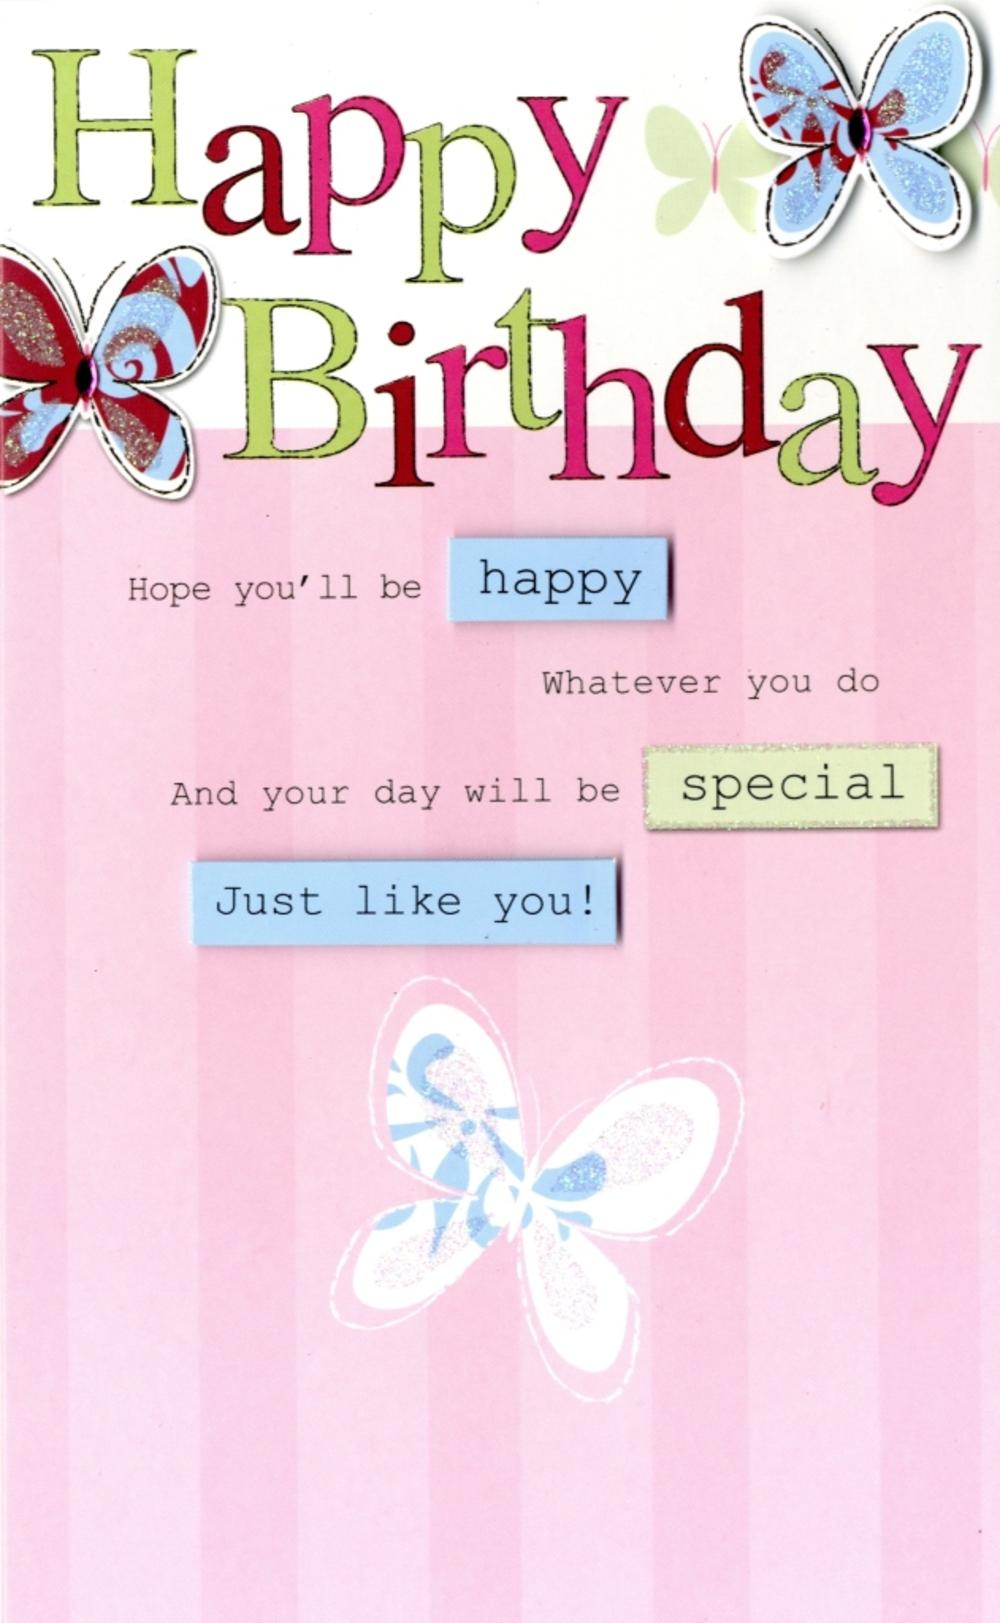 Happy Birthday Pretty Butterfly Greeting Card